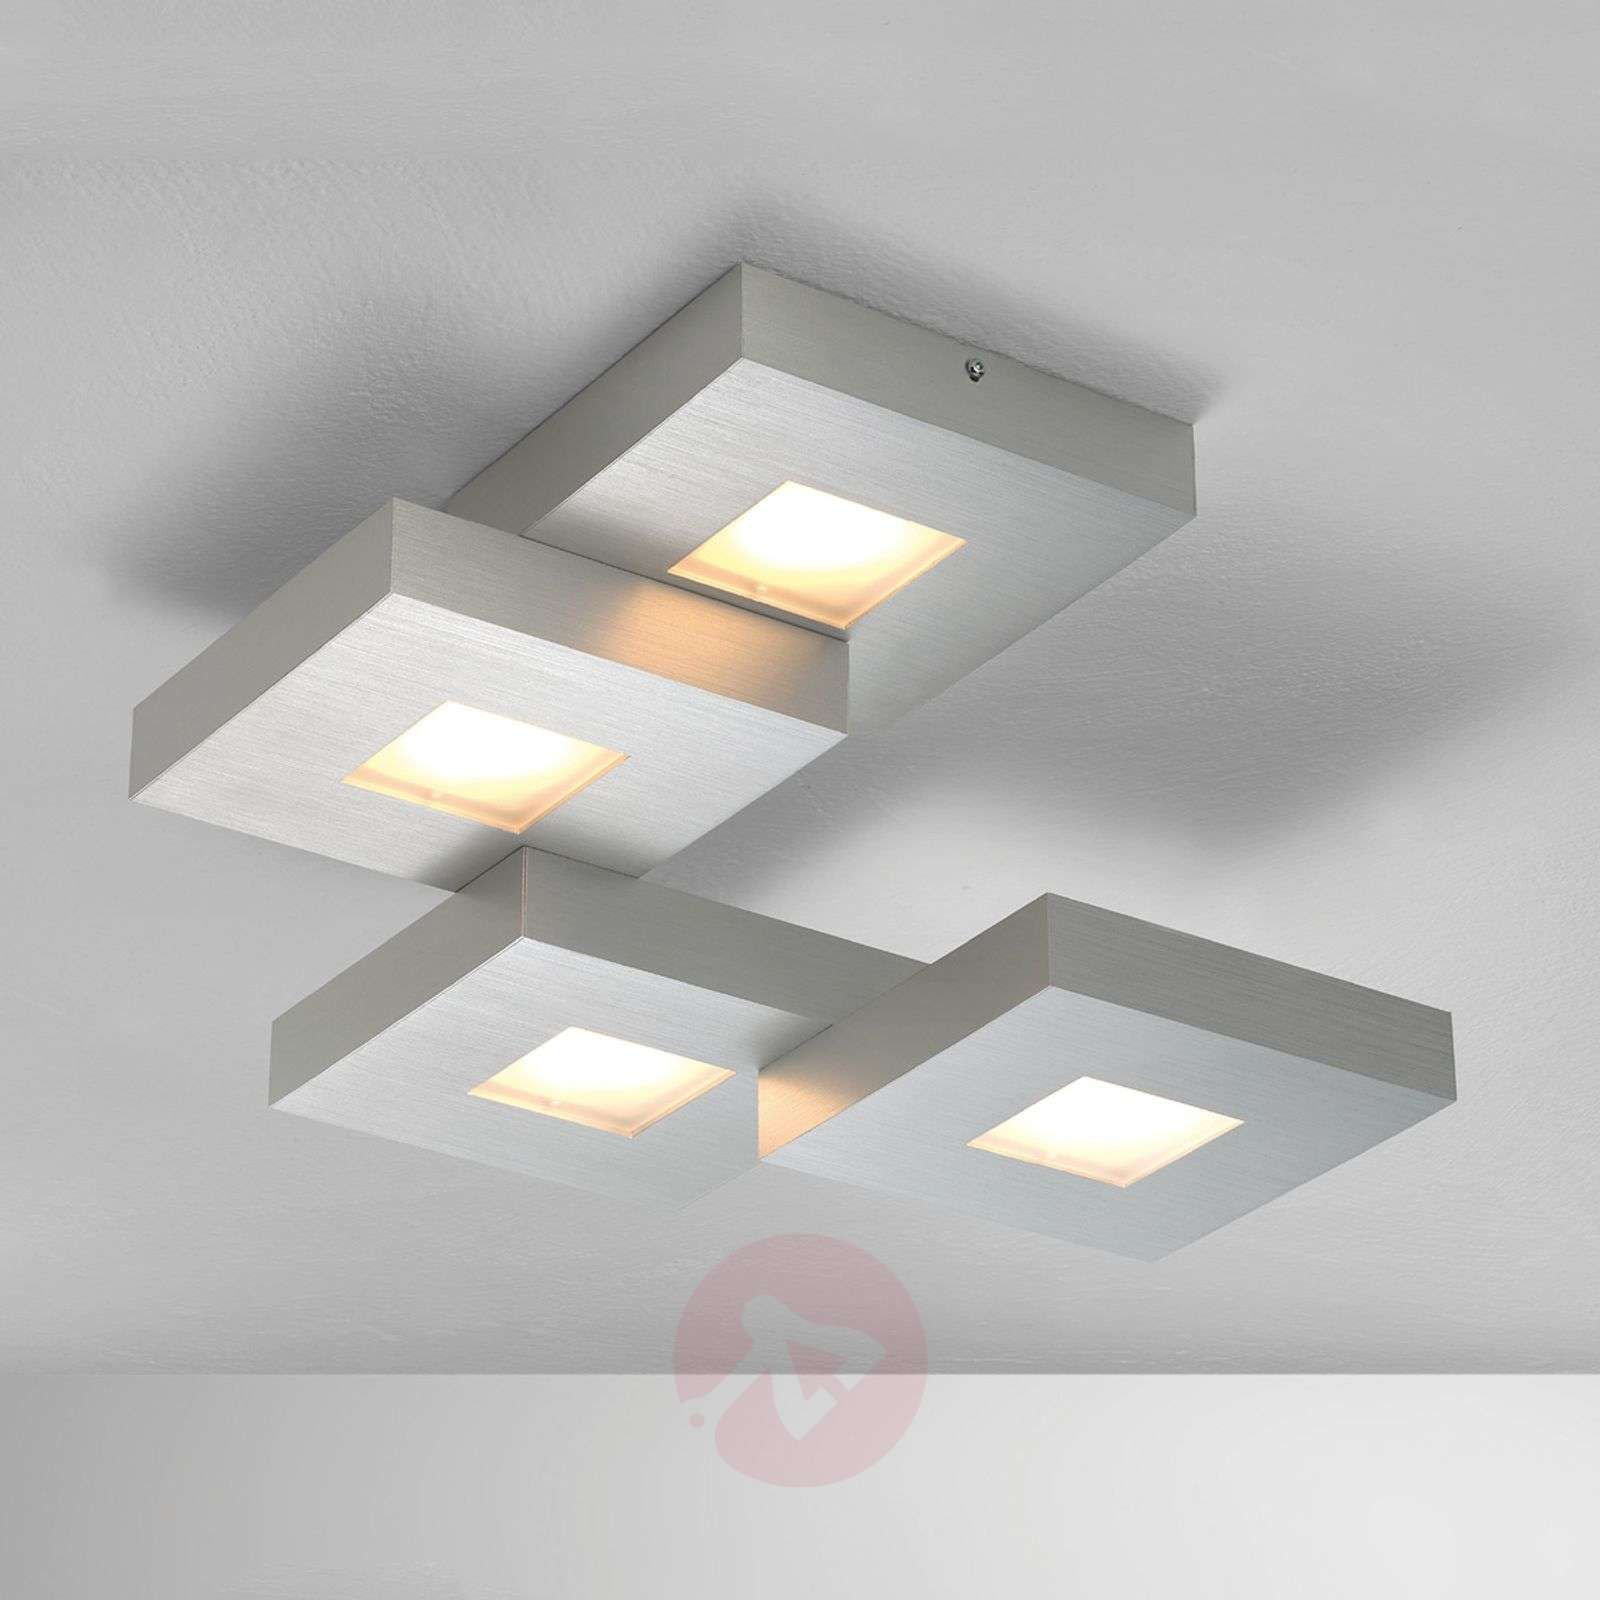 Plafonnier LED Cubus disposé en escaliers-1556045-01